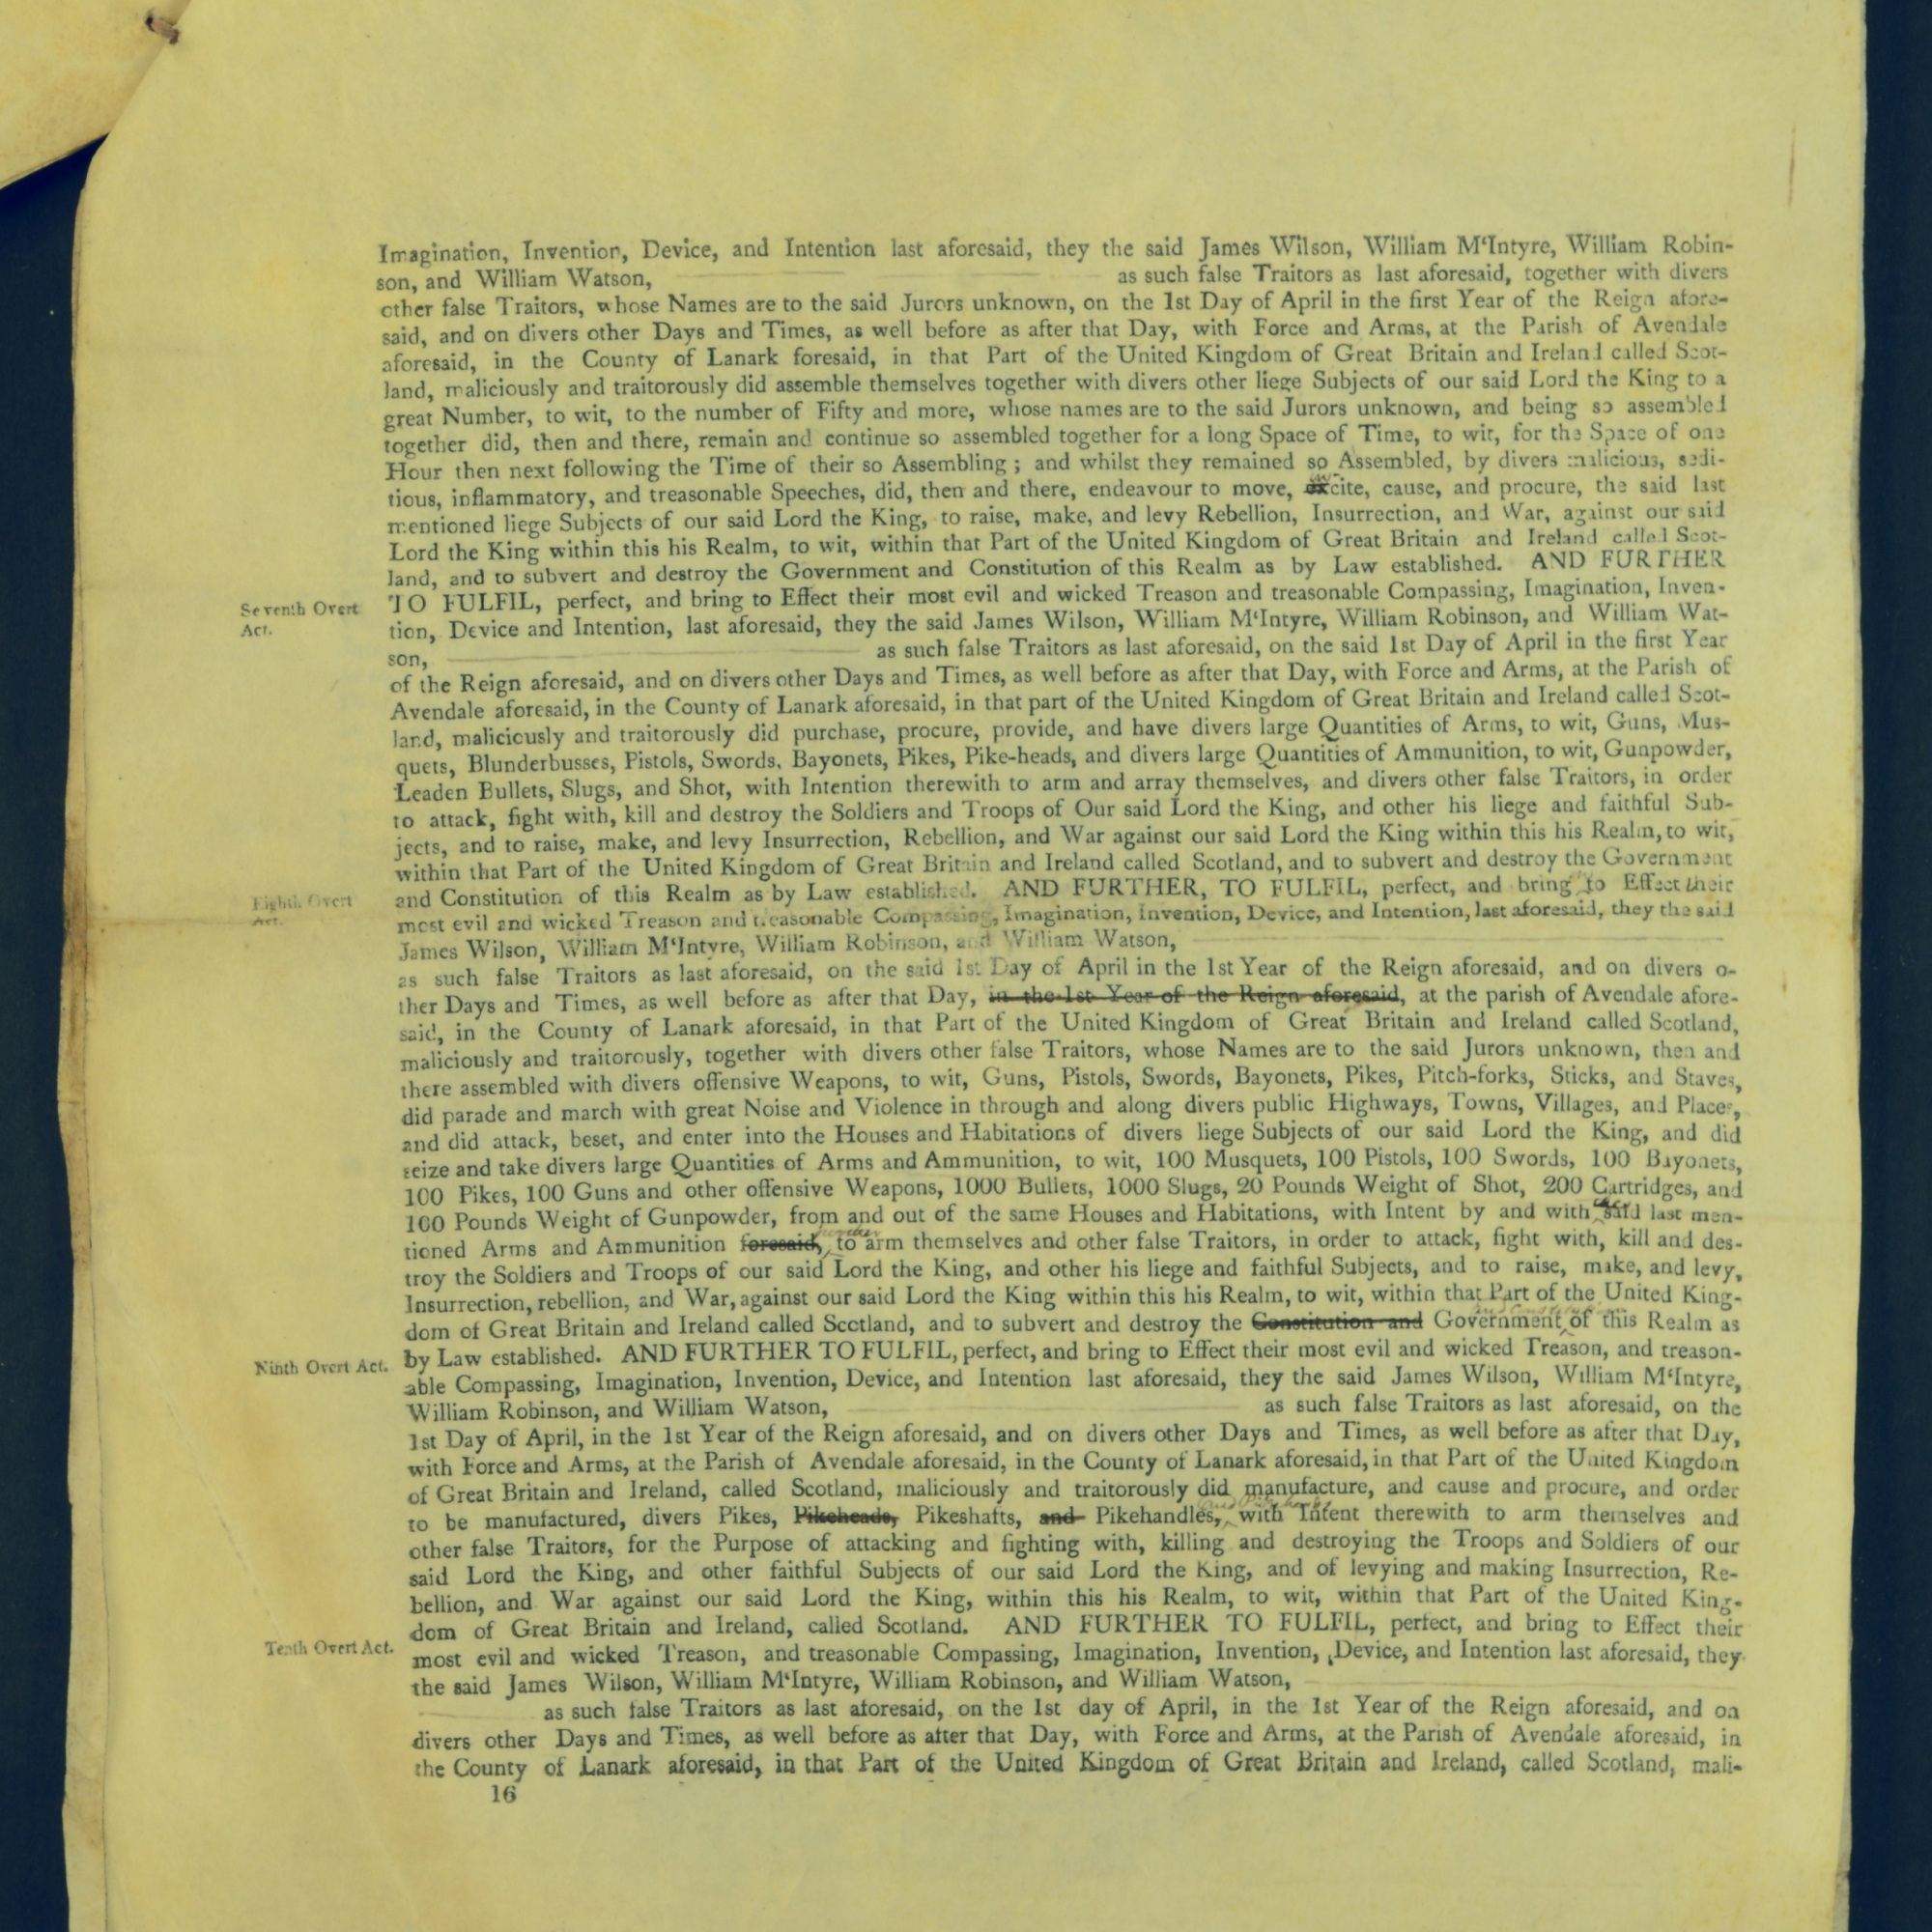 Treason Trials for the County of Lanark, the Strathaven Case. True bills found against four men, James Wilson, William McIntyre, William Robinson and William Watson. National Records of Scotland, Crown copyright, JC21/3/4 p16